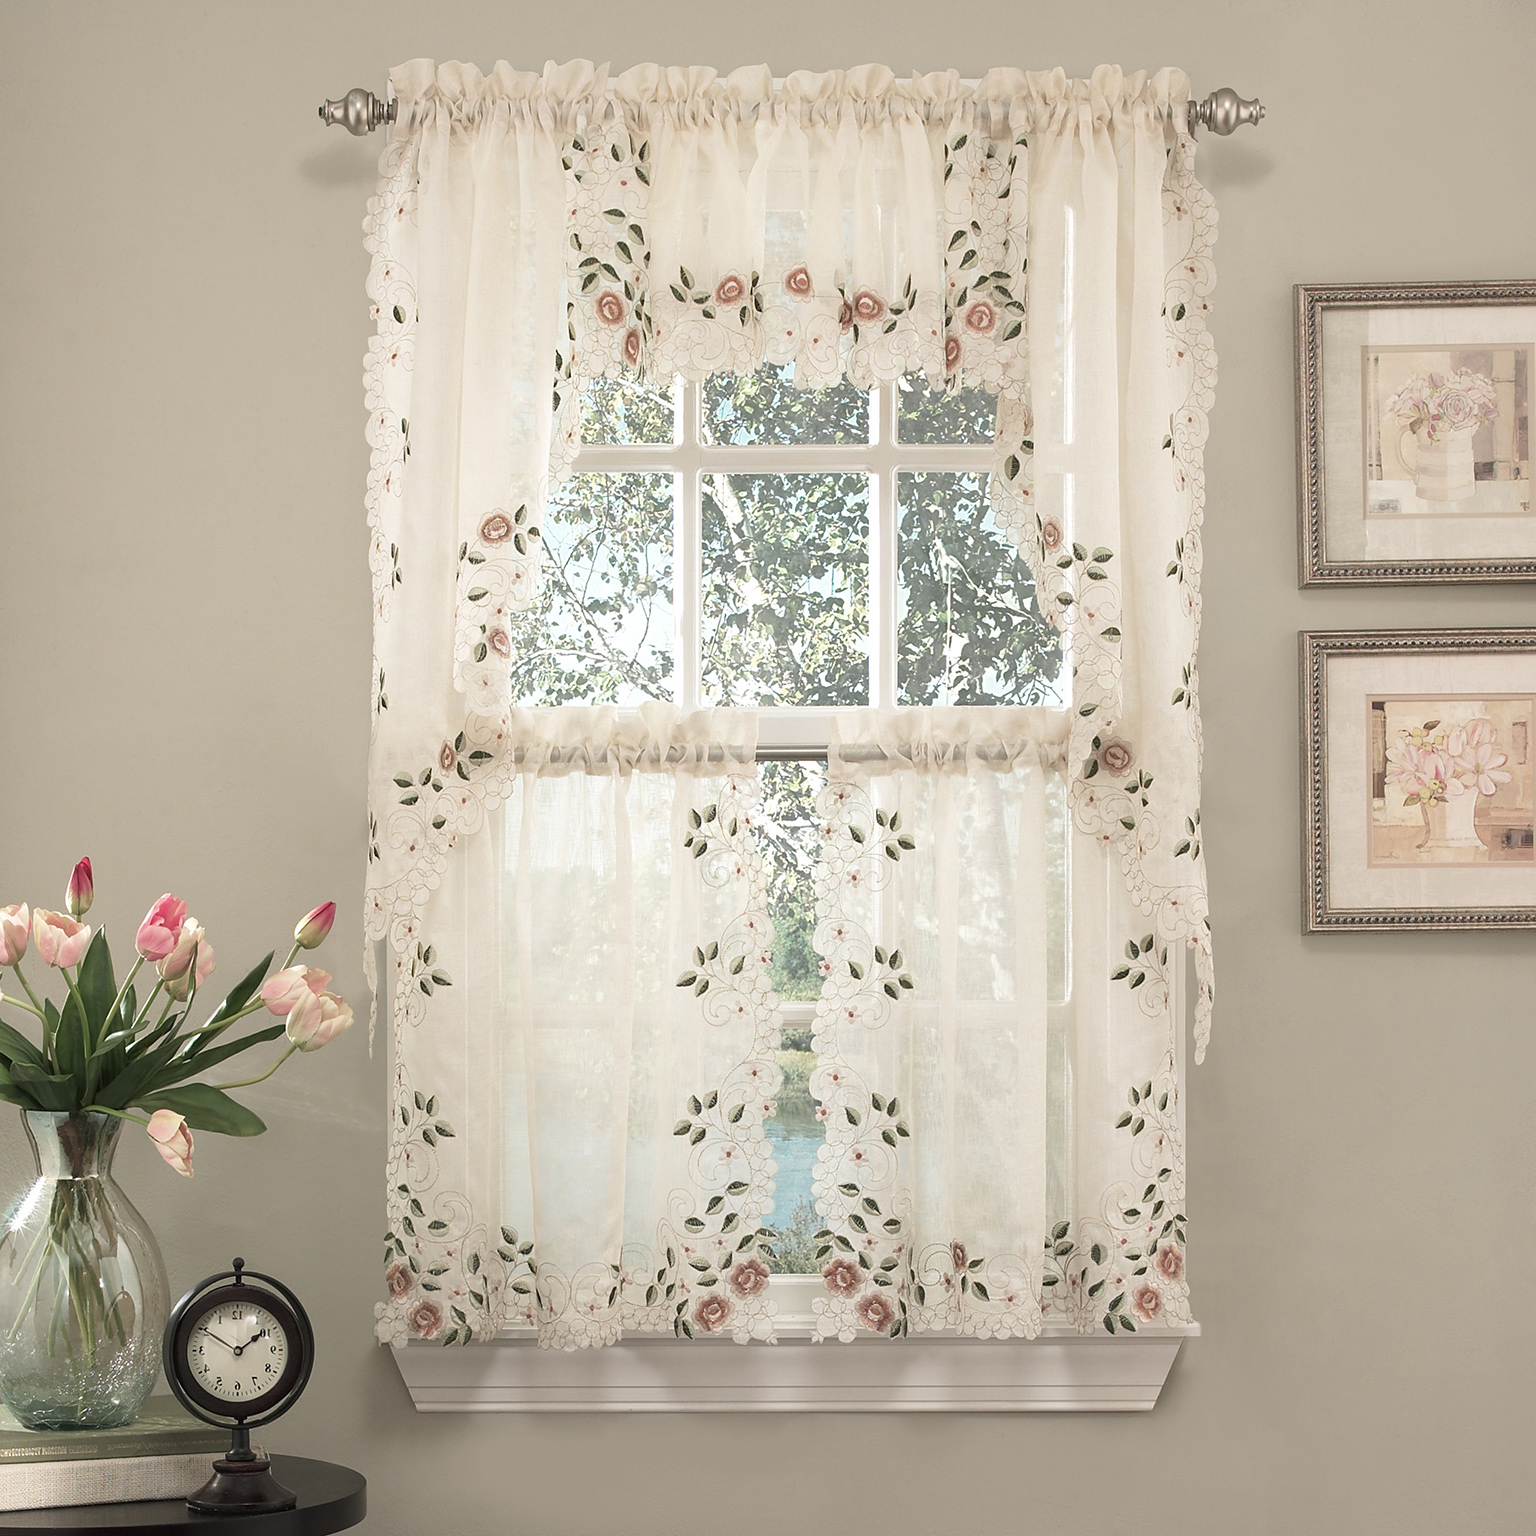 """Details About Rosemary Floral Embroidered Semi Sheer Kitchen Curtain 36"""" Tier Swag Valance Set Intended For Well Known Floral Lace Rod Pocket Kitchen Curtain Valance And Tiers Sets (View 3 of 20)"""